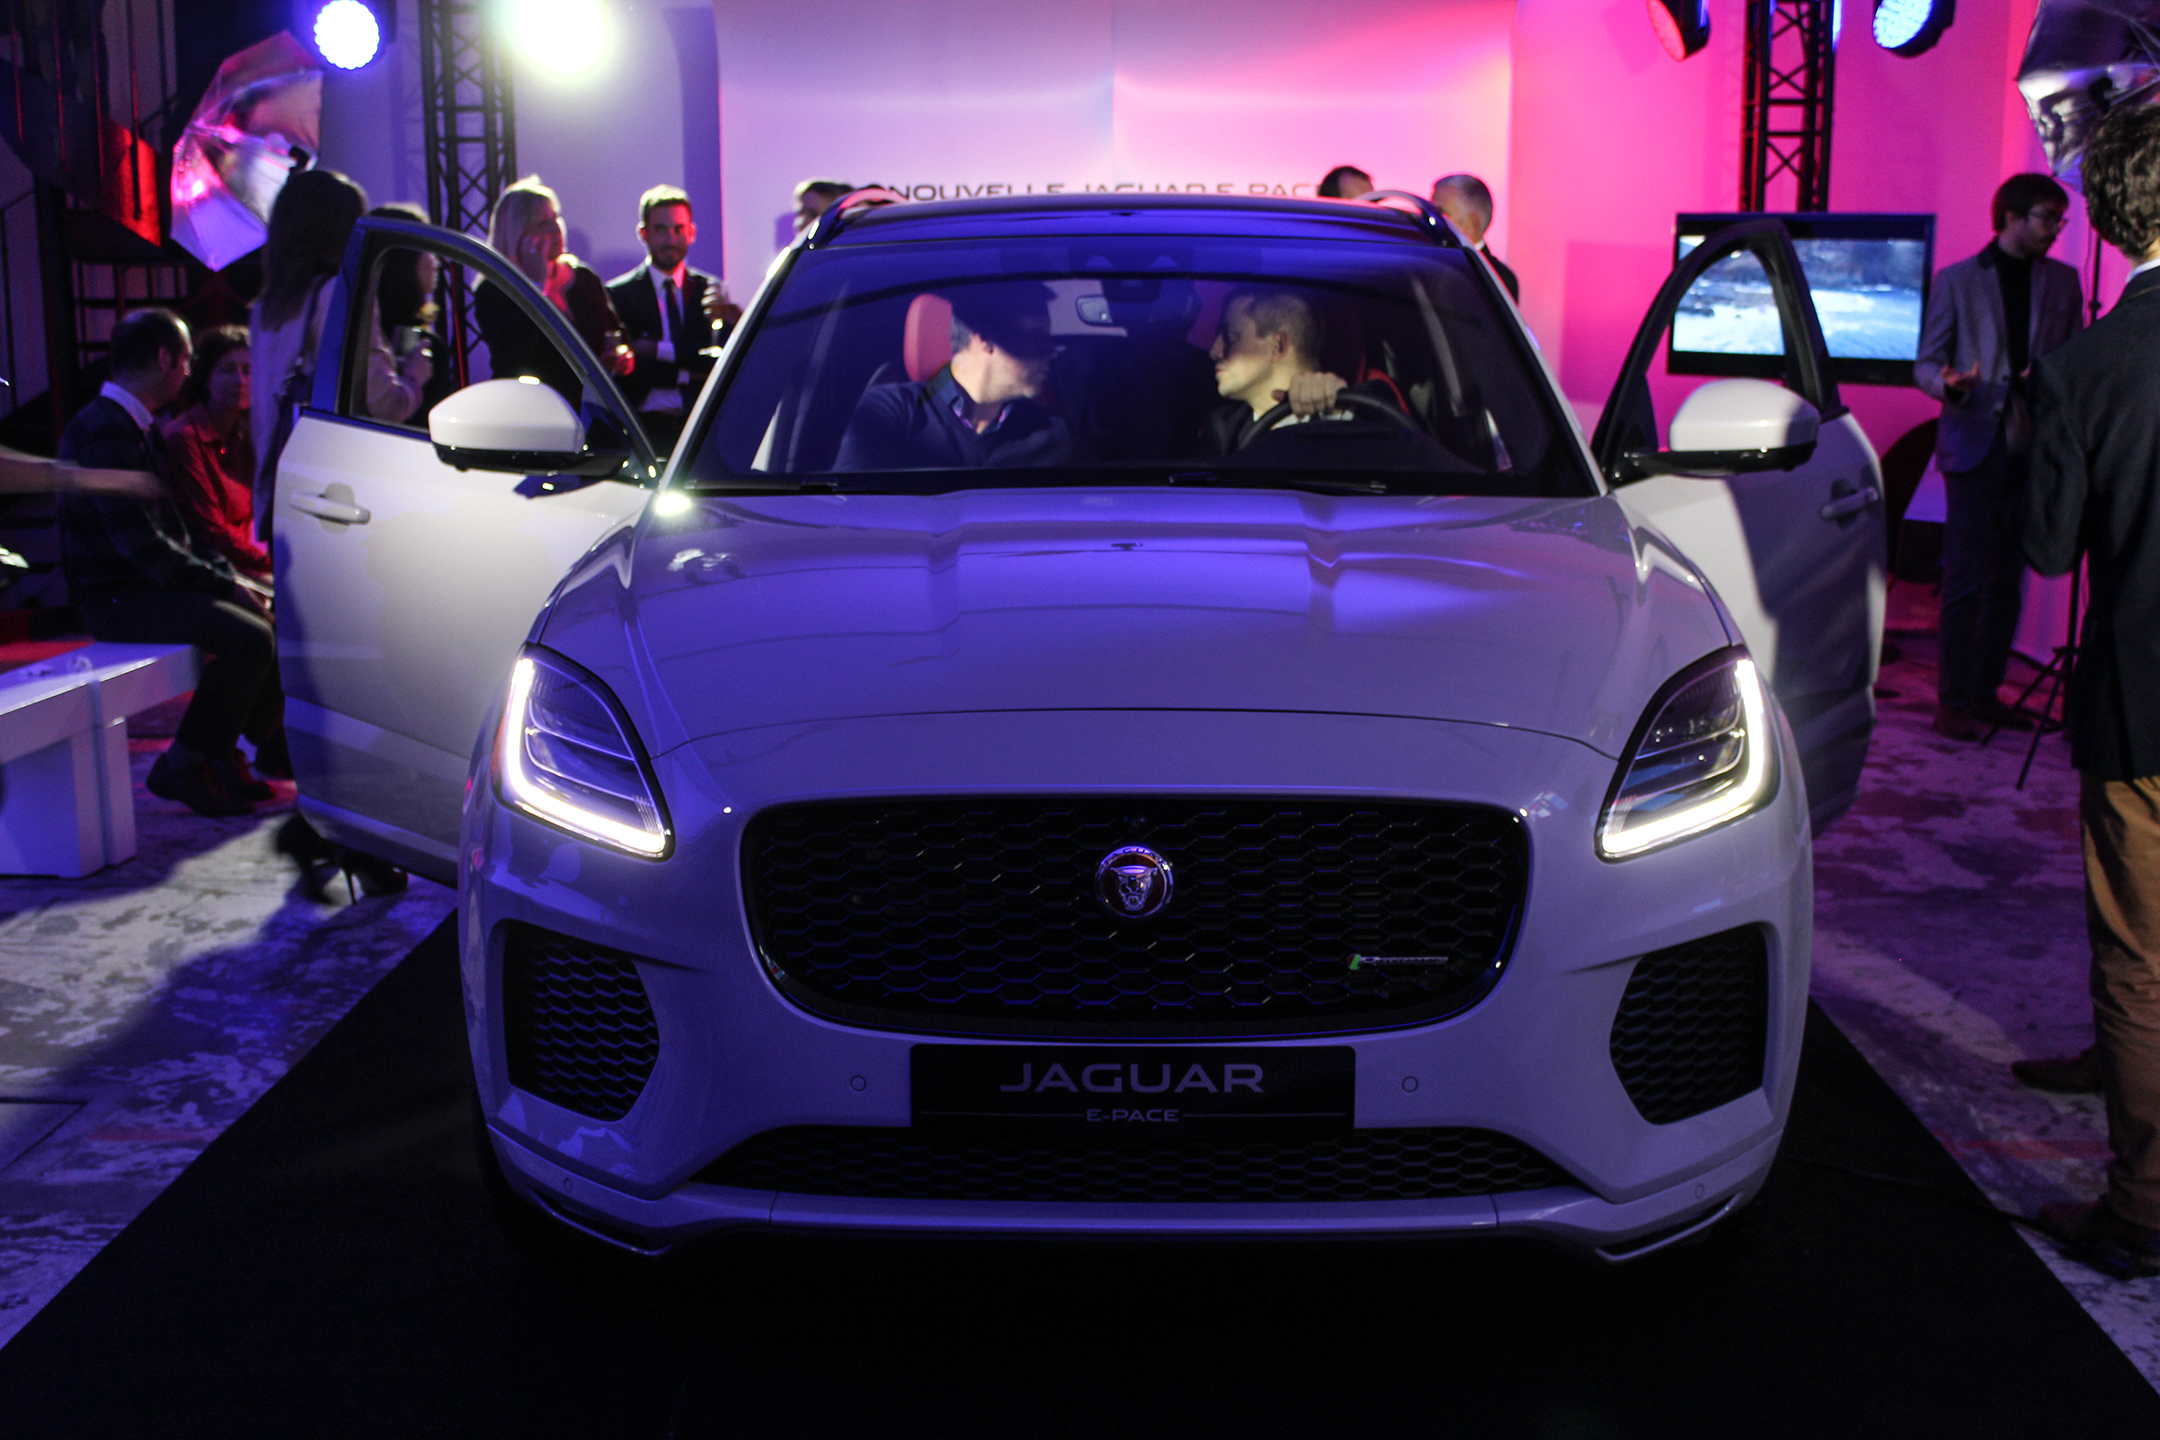 Jaguar E-PACE - 2017 - front-face - avant-première Jaguar France - photo by Arnaud Demasier RS Photographie